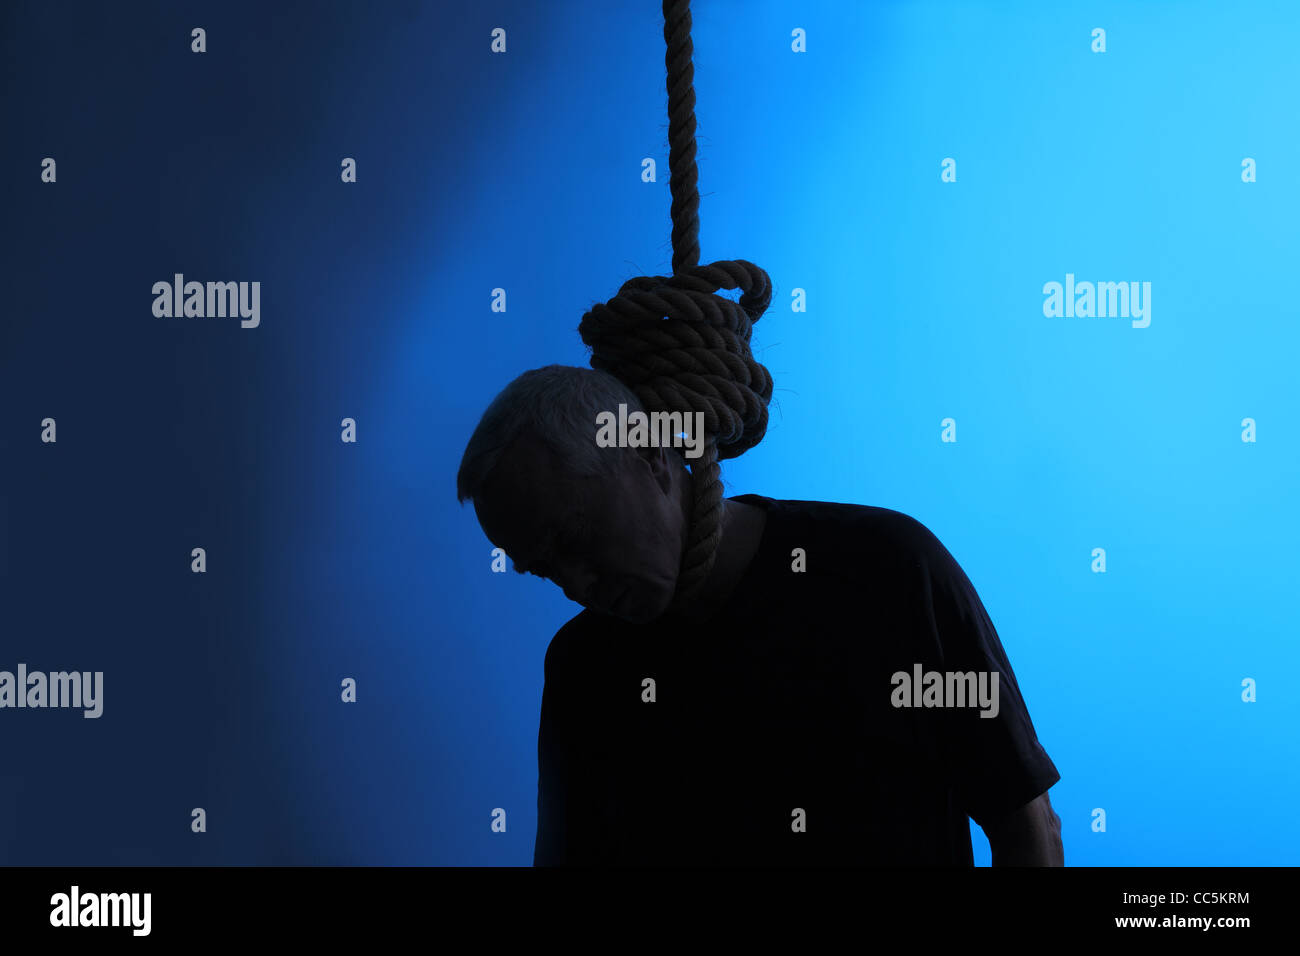 A man hanging with a noose around his neck - Stock Image